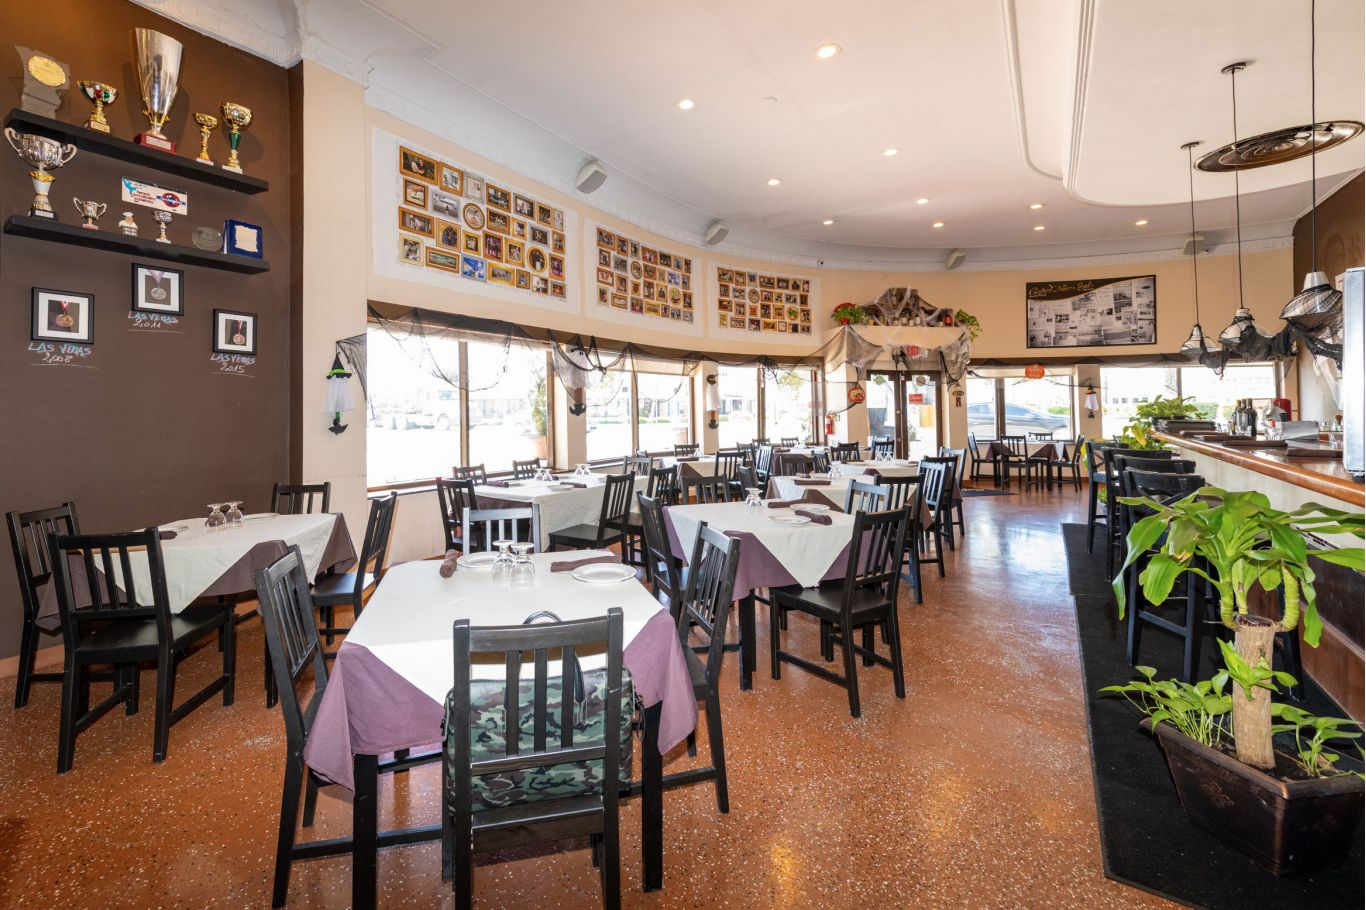 Capri New Style Miami Has Become Miami Beach's Most Popular Non-Gluten Restaurant